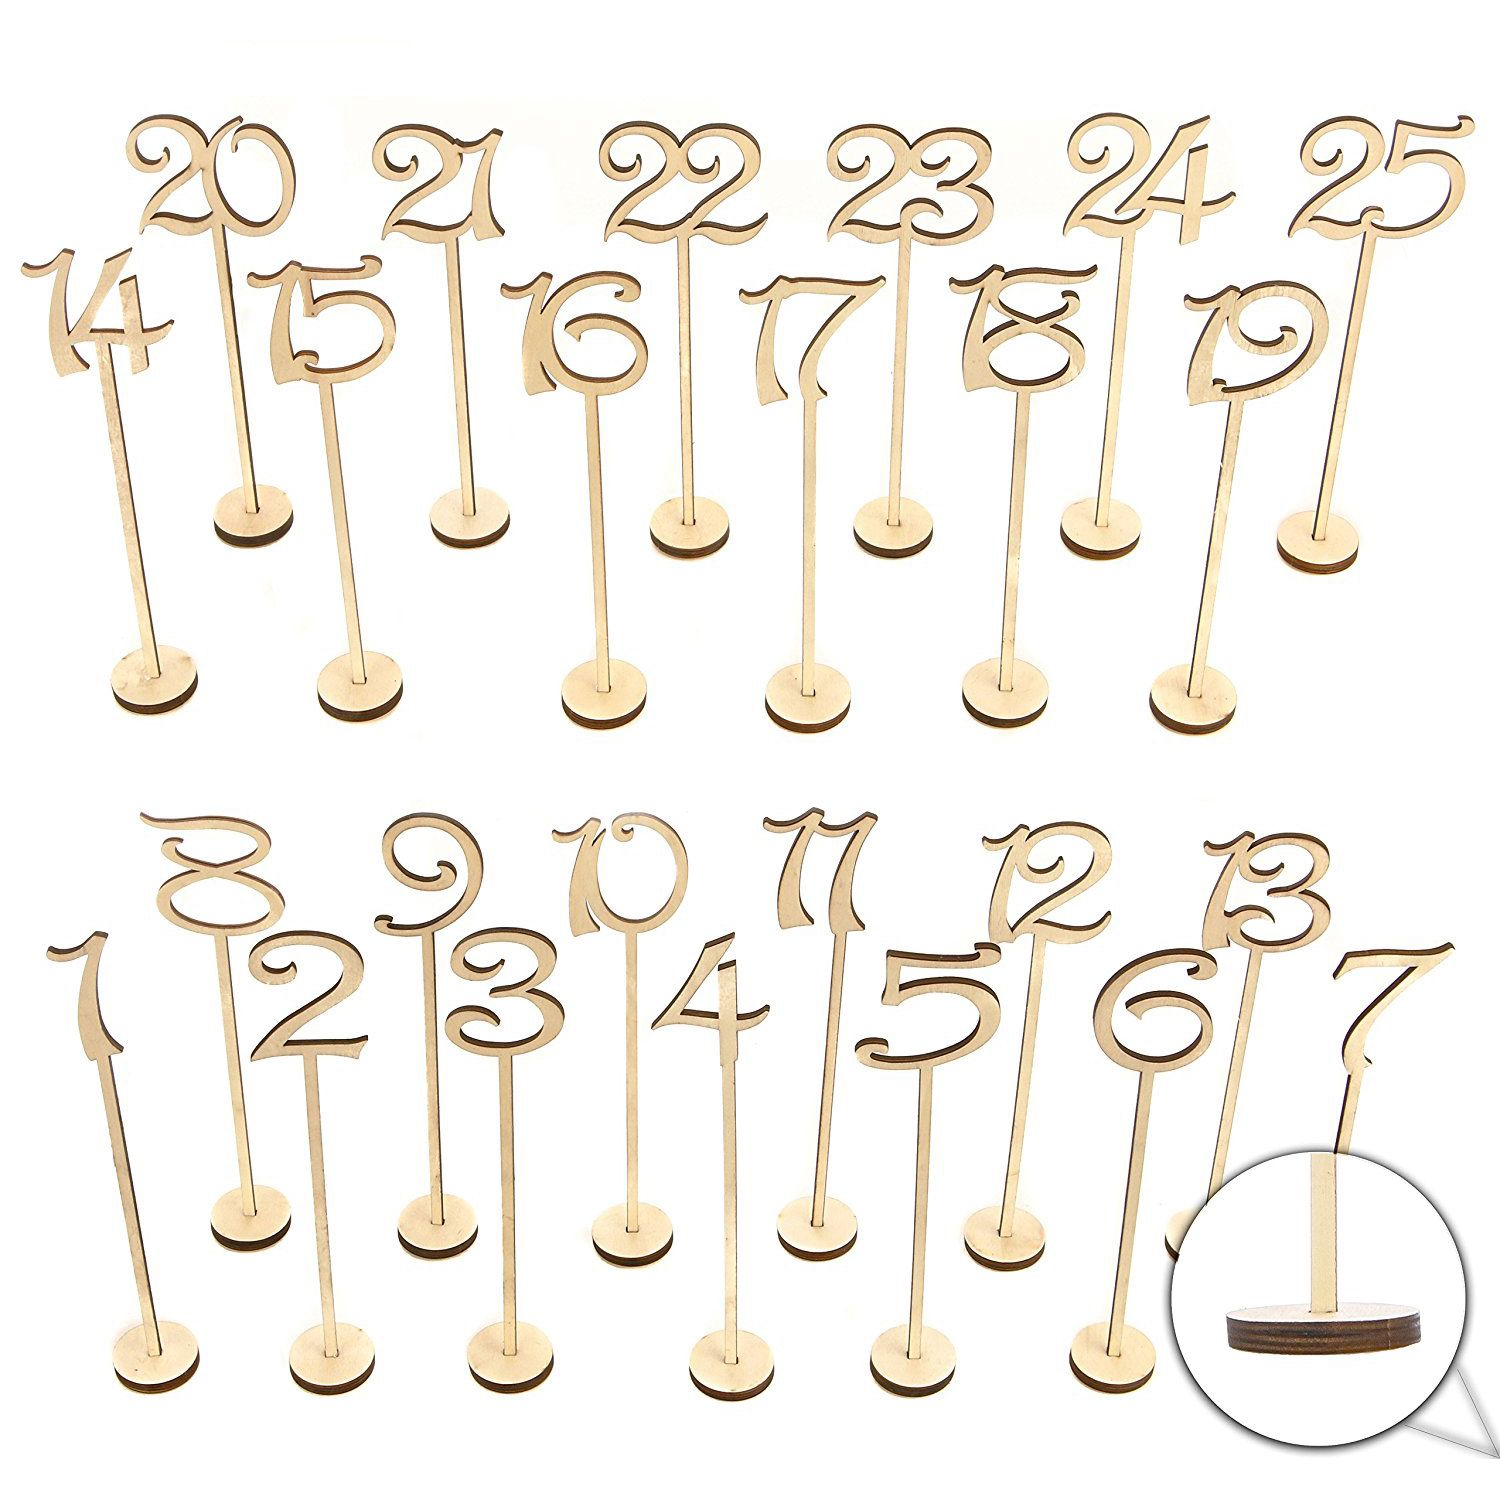 NOCM-Wooden Wedding Table Numbers 1-25 pcs Vintage Home Birthday Party Event Banquet Decor Anniversary Decoration Favors Signs